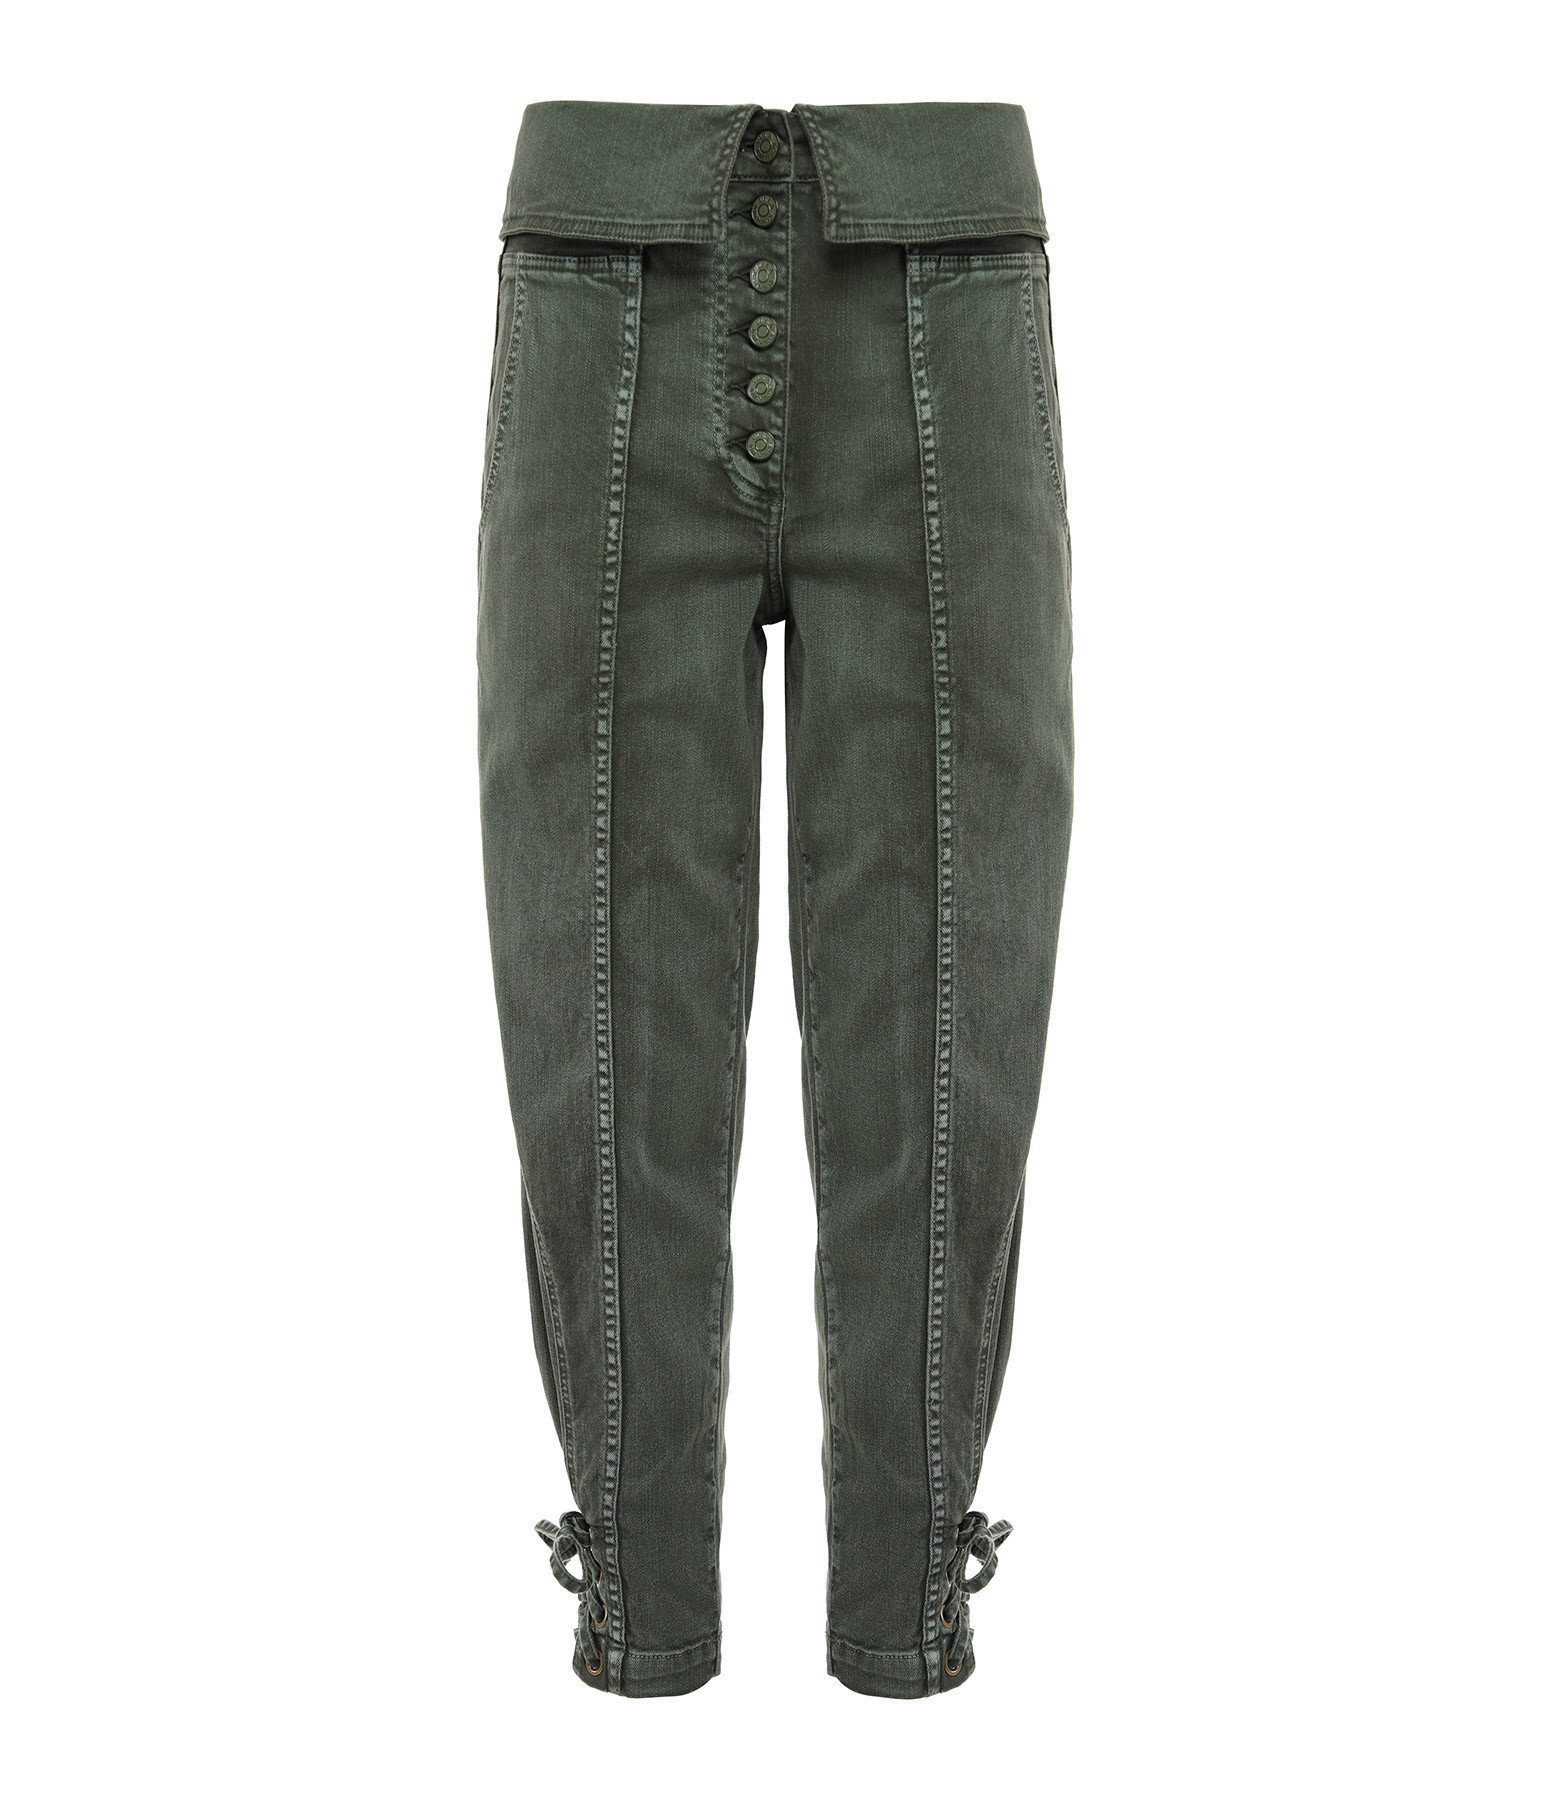 ULLA JOHNSON - Pantalon Coton Denim Kingston Army